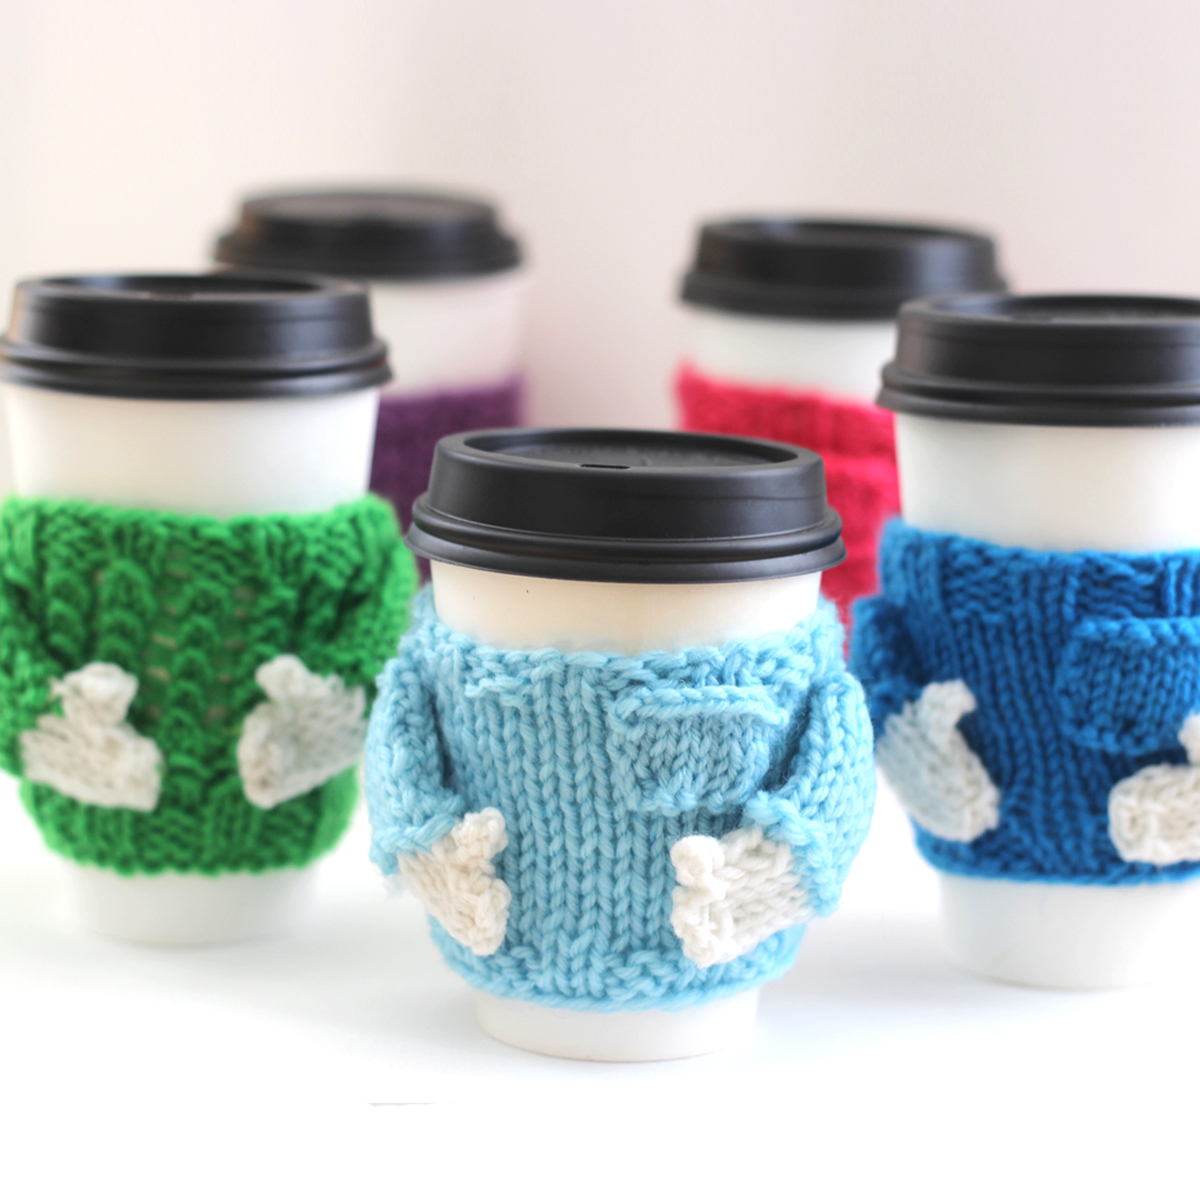 Take Out Coffee Cups with knitted sweater designed mug cozies in various colors.